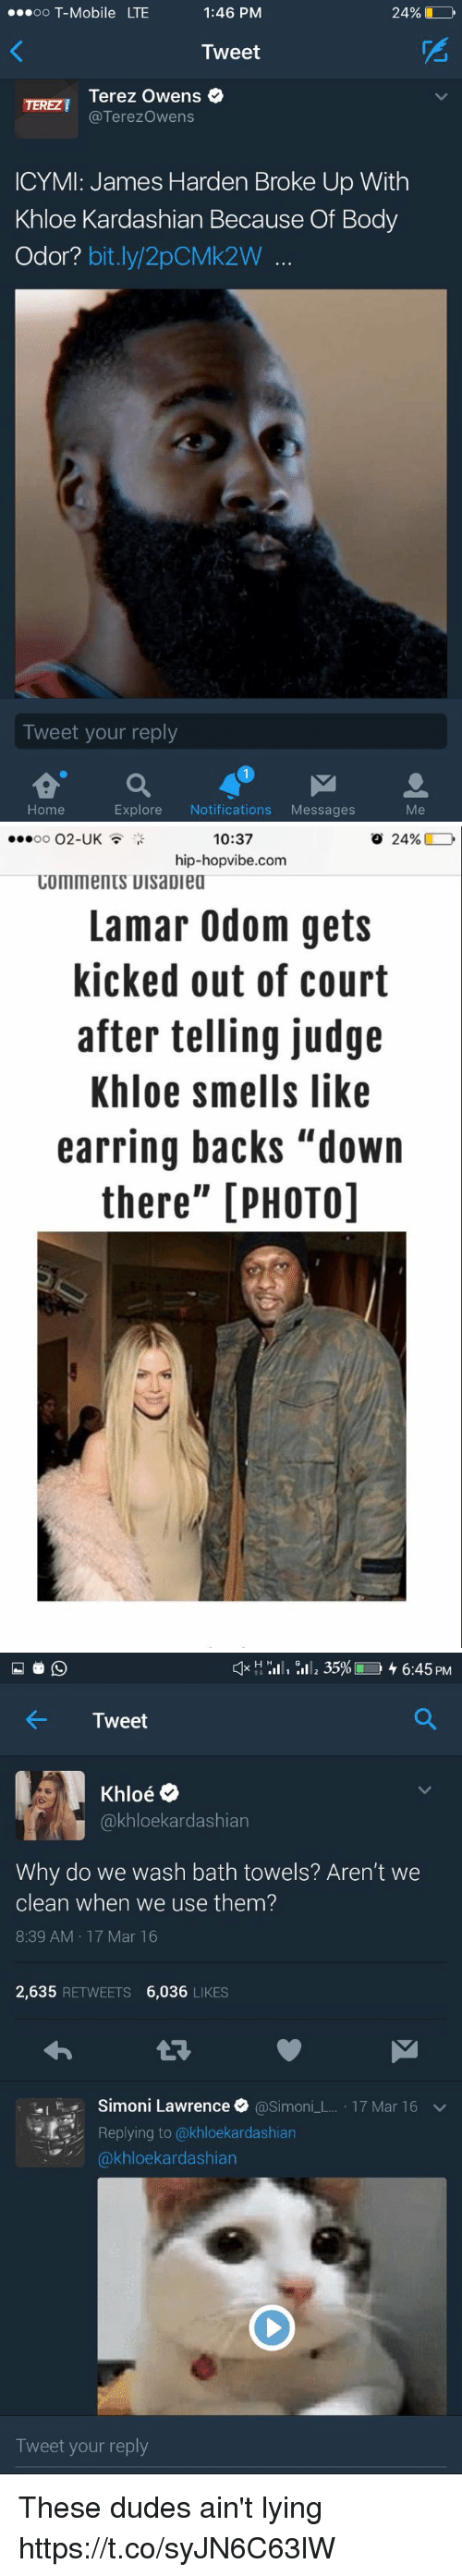 "Funny, James Harden, and Khloe Kardashian: 24%  OO  T-Mobile LTE  1:46 PM  Tweet  Terez Owens  TEREZI  Terezowens  ICYMI: James Harden Broke Up With  Khloe Kardashian Because Of Body  Odor?  bit.ly 2pCMk2W  Tweet your reply  Explore  Notifications  Messages  Home   10:37  o 24%  O2-UK  OO  hip-hopvibe.com  COmments UIsaDiea  Lamar Odom gets  kicked out of court  after telling judge  Khloe smells like  earring backs ""down  there"" [PHOTO]   H H  ill, 35%L 6:45 PM  Tweet  Oe  akhloekardashian  Why do we wash bath towels? Aren't we  clean when we use them?  8:39 AM 17 Mar 16  2,635  RETWEETS  6,036  LIKES  Simoni Lawrence  @Simon  L 17 Mar 16 v  Replying to @khloekardashian  kardashian  Tweet your reply These dudes ain't lying https://t.co/syJN6C63lW"